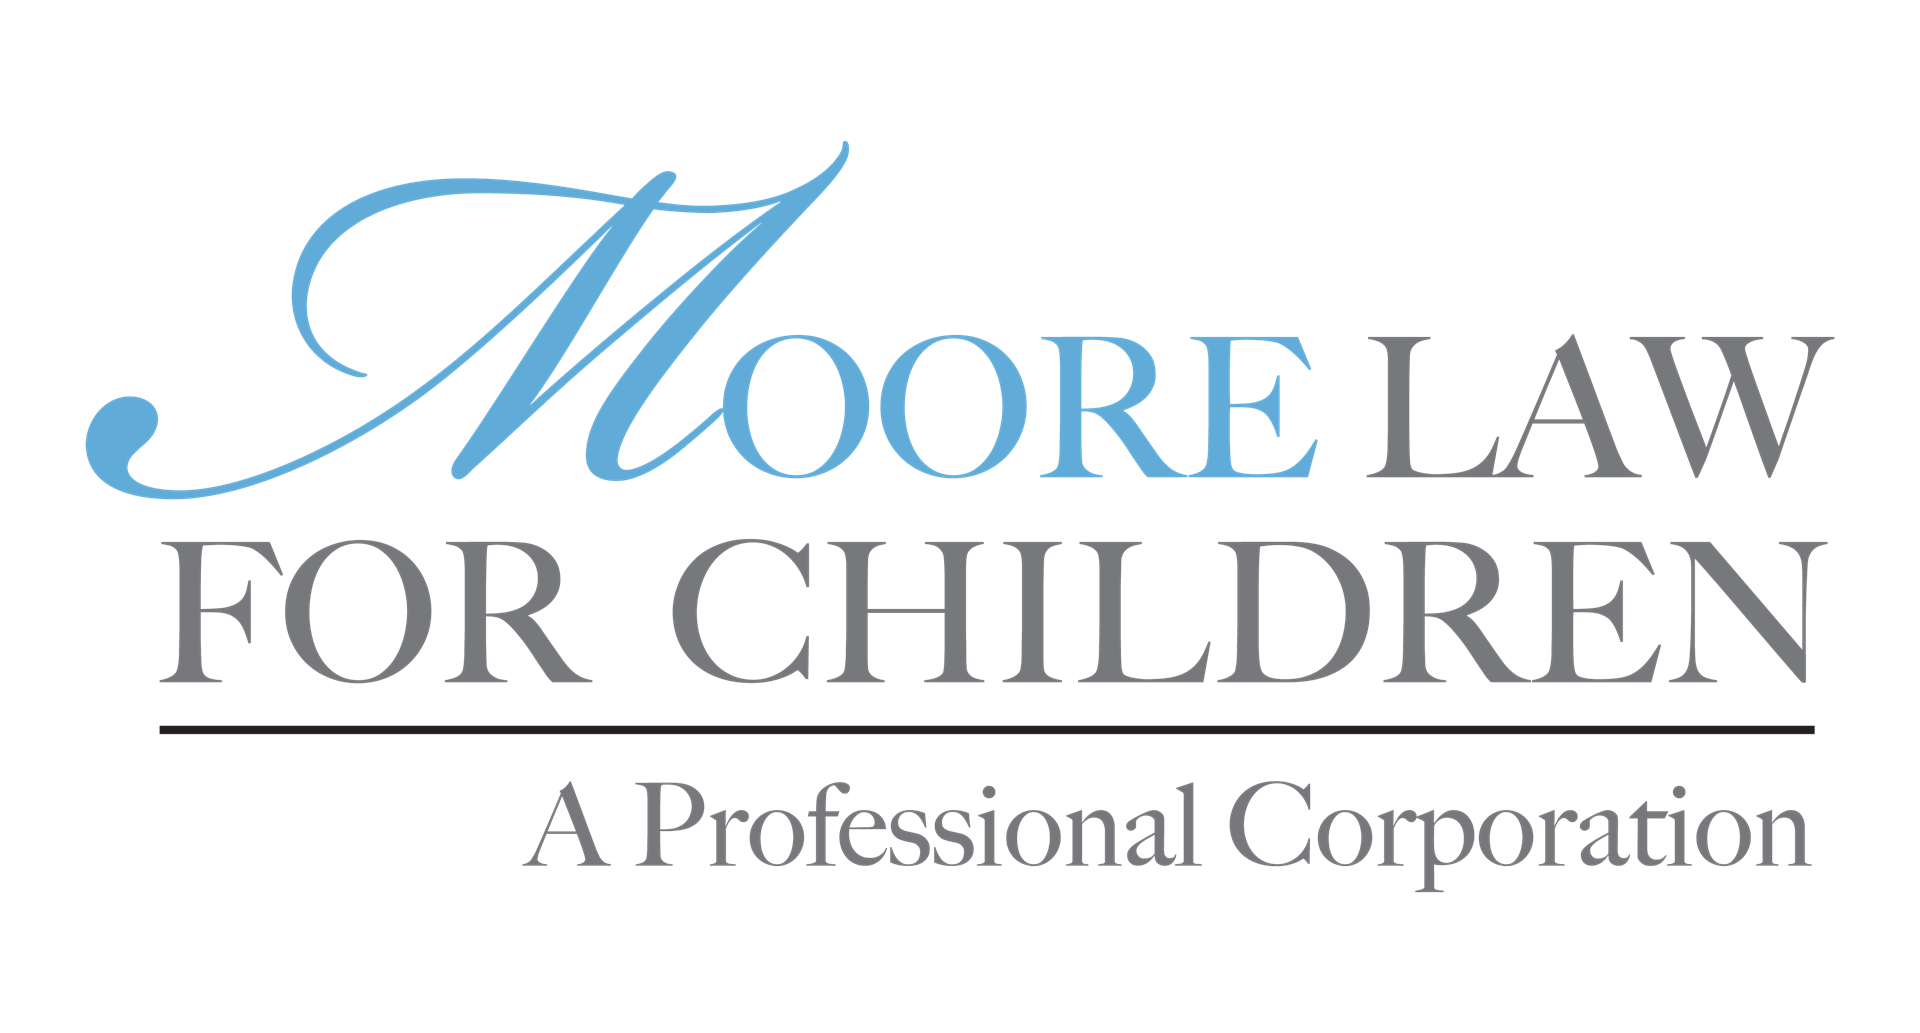 Moore Law For Children, APC